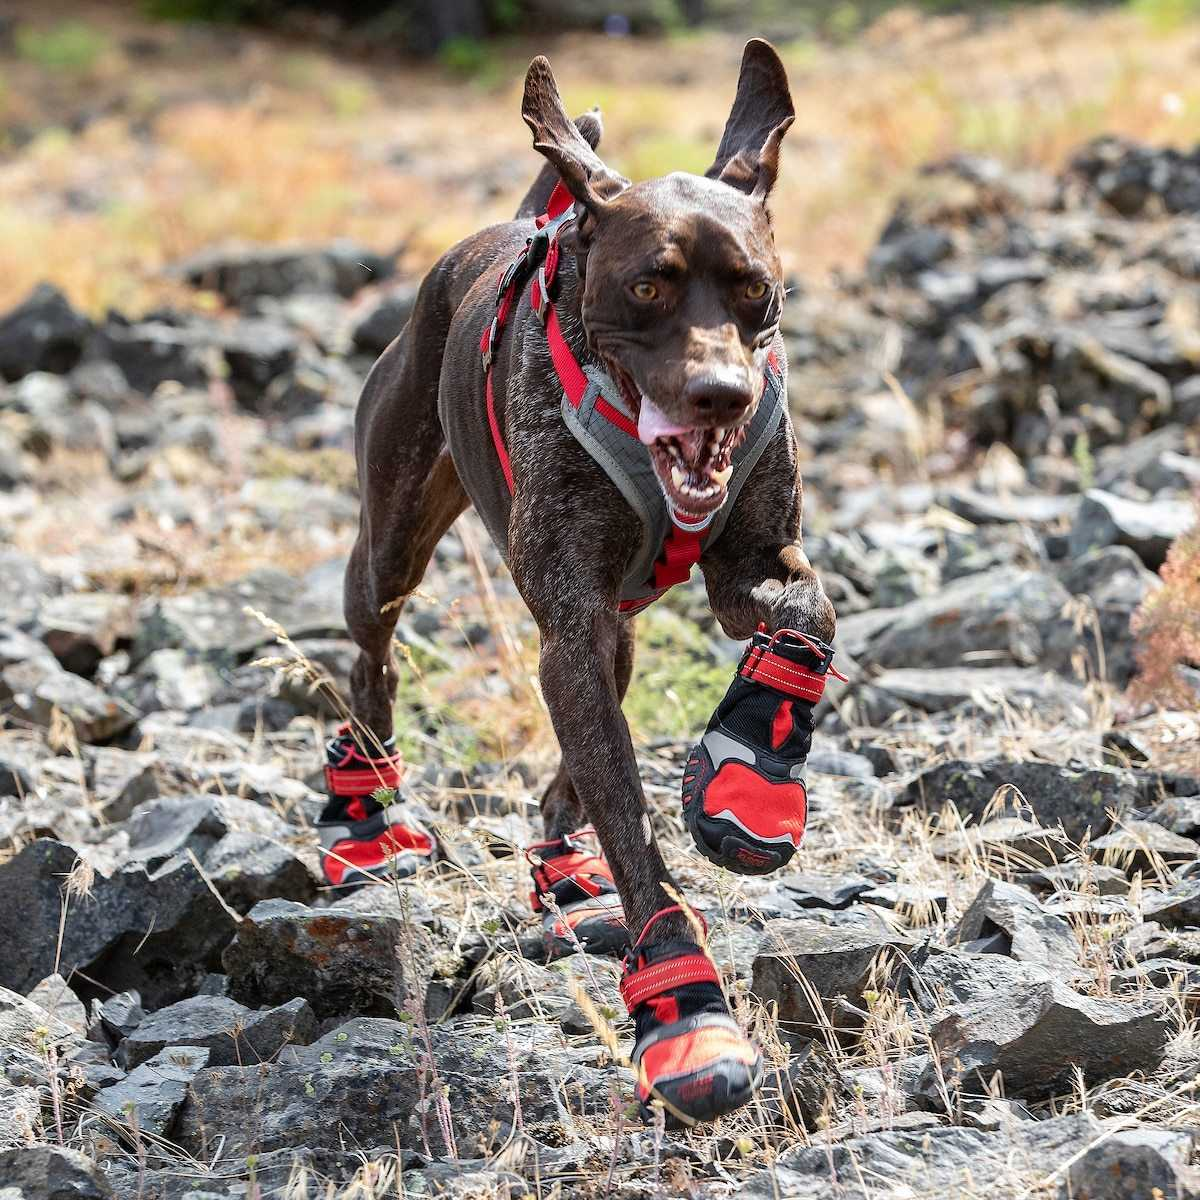 How to get your dog comfortable with wearing shoes